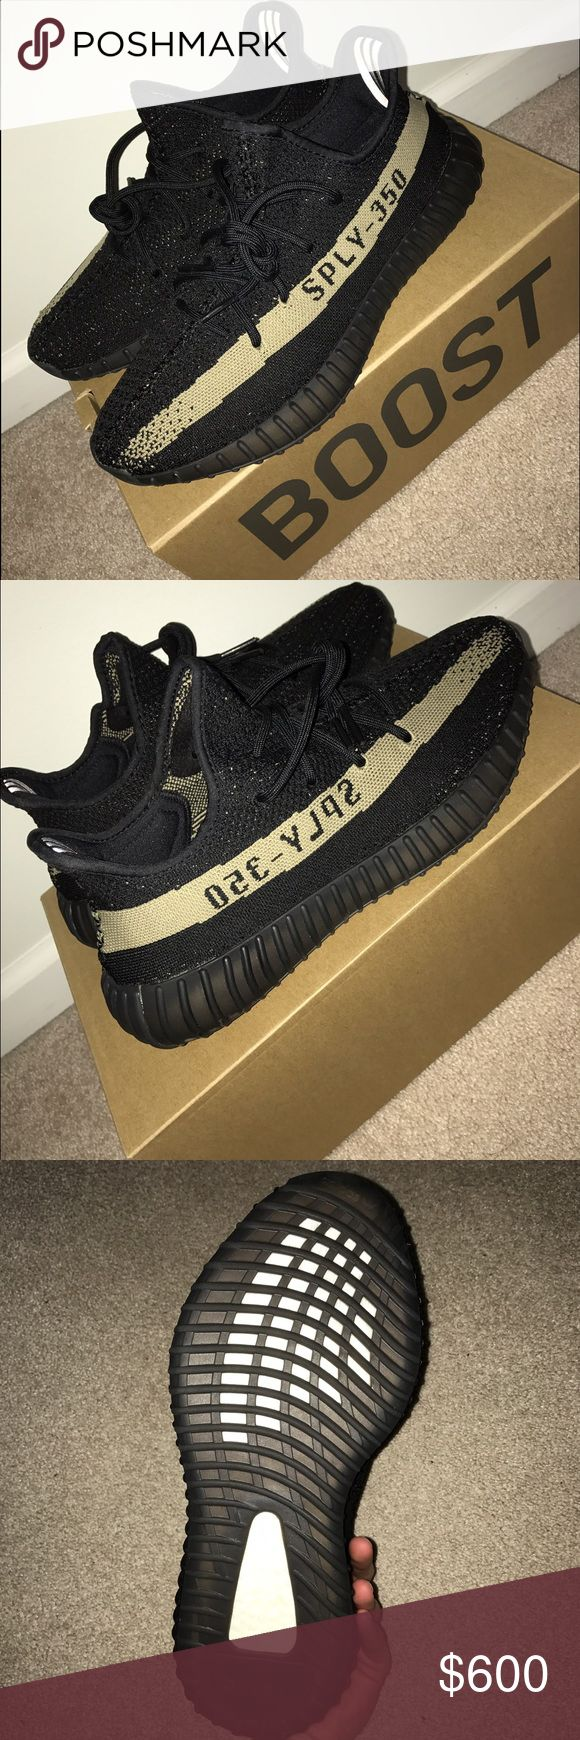 4114cba20cd Adidas YEEZY Boost 350 V2  Green  Core Black Green sply 750 BY9611